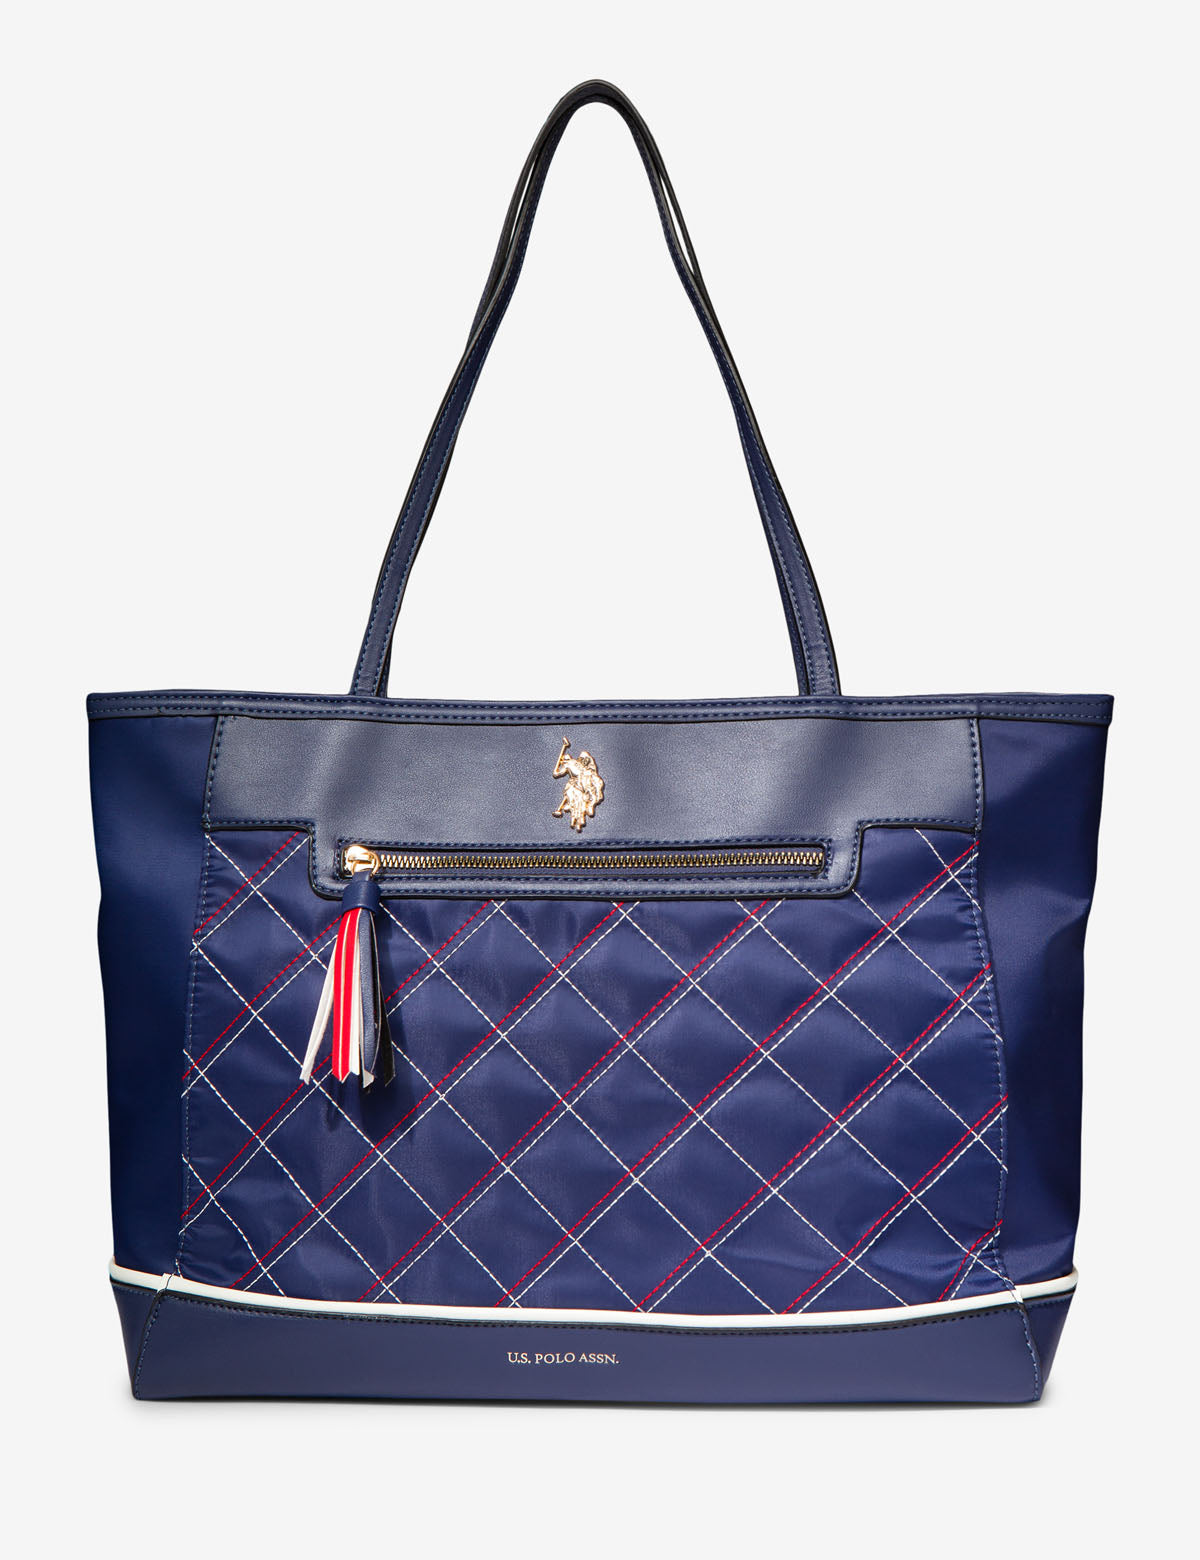 QUILTED NYLON TOTE - U.S. Polo Assn.